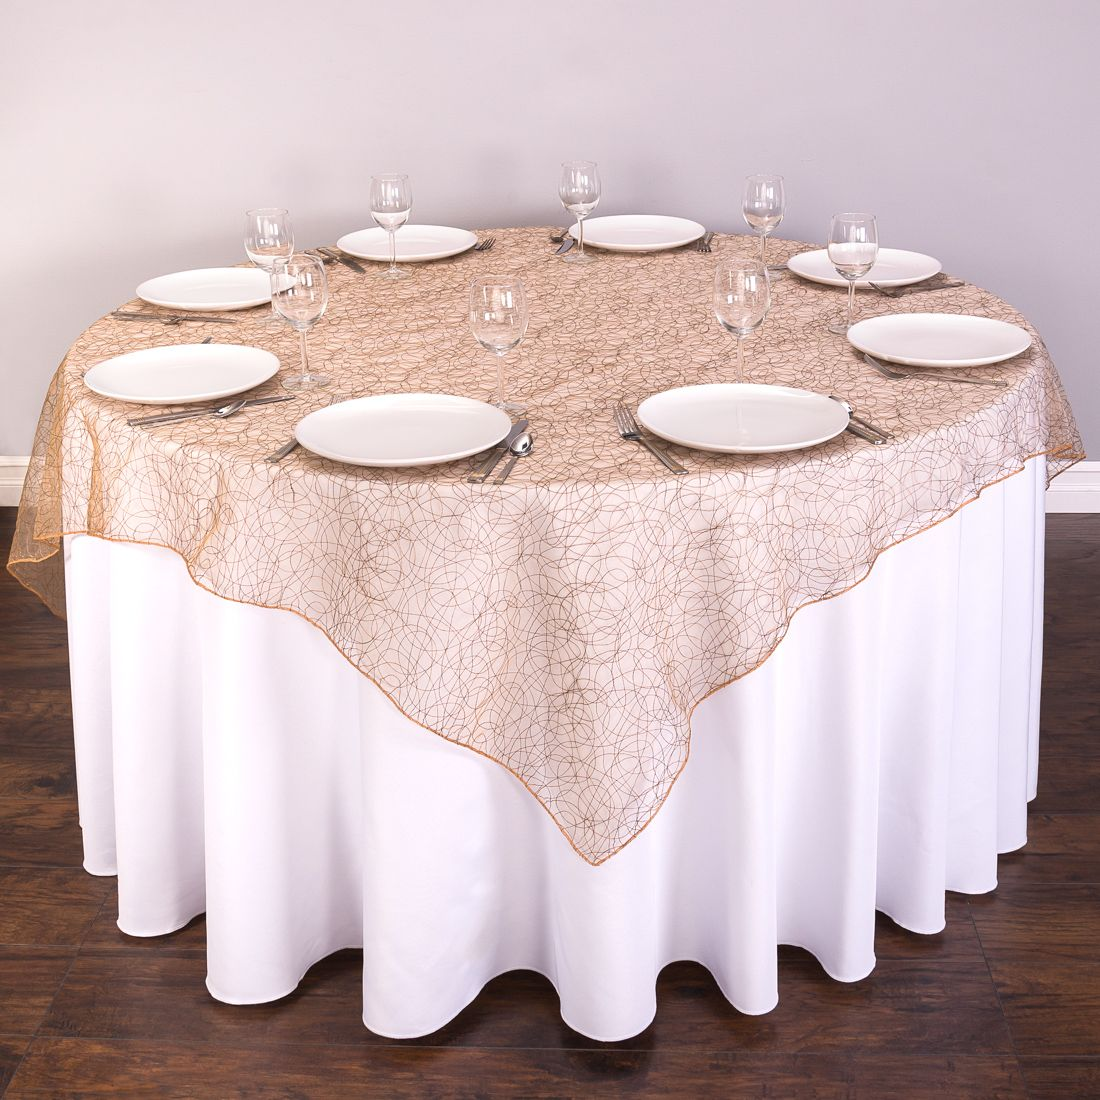 Our Beautiful Table Overlays Take The Subtlety Of Sheer Delicate Organza To A Whole New Dimension